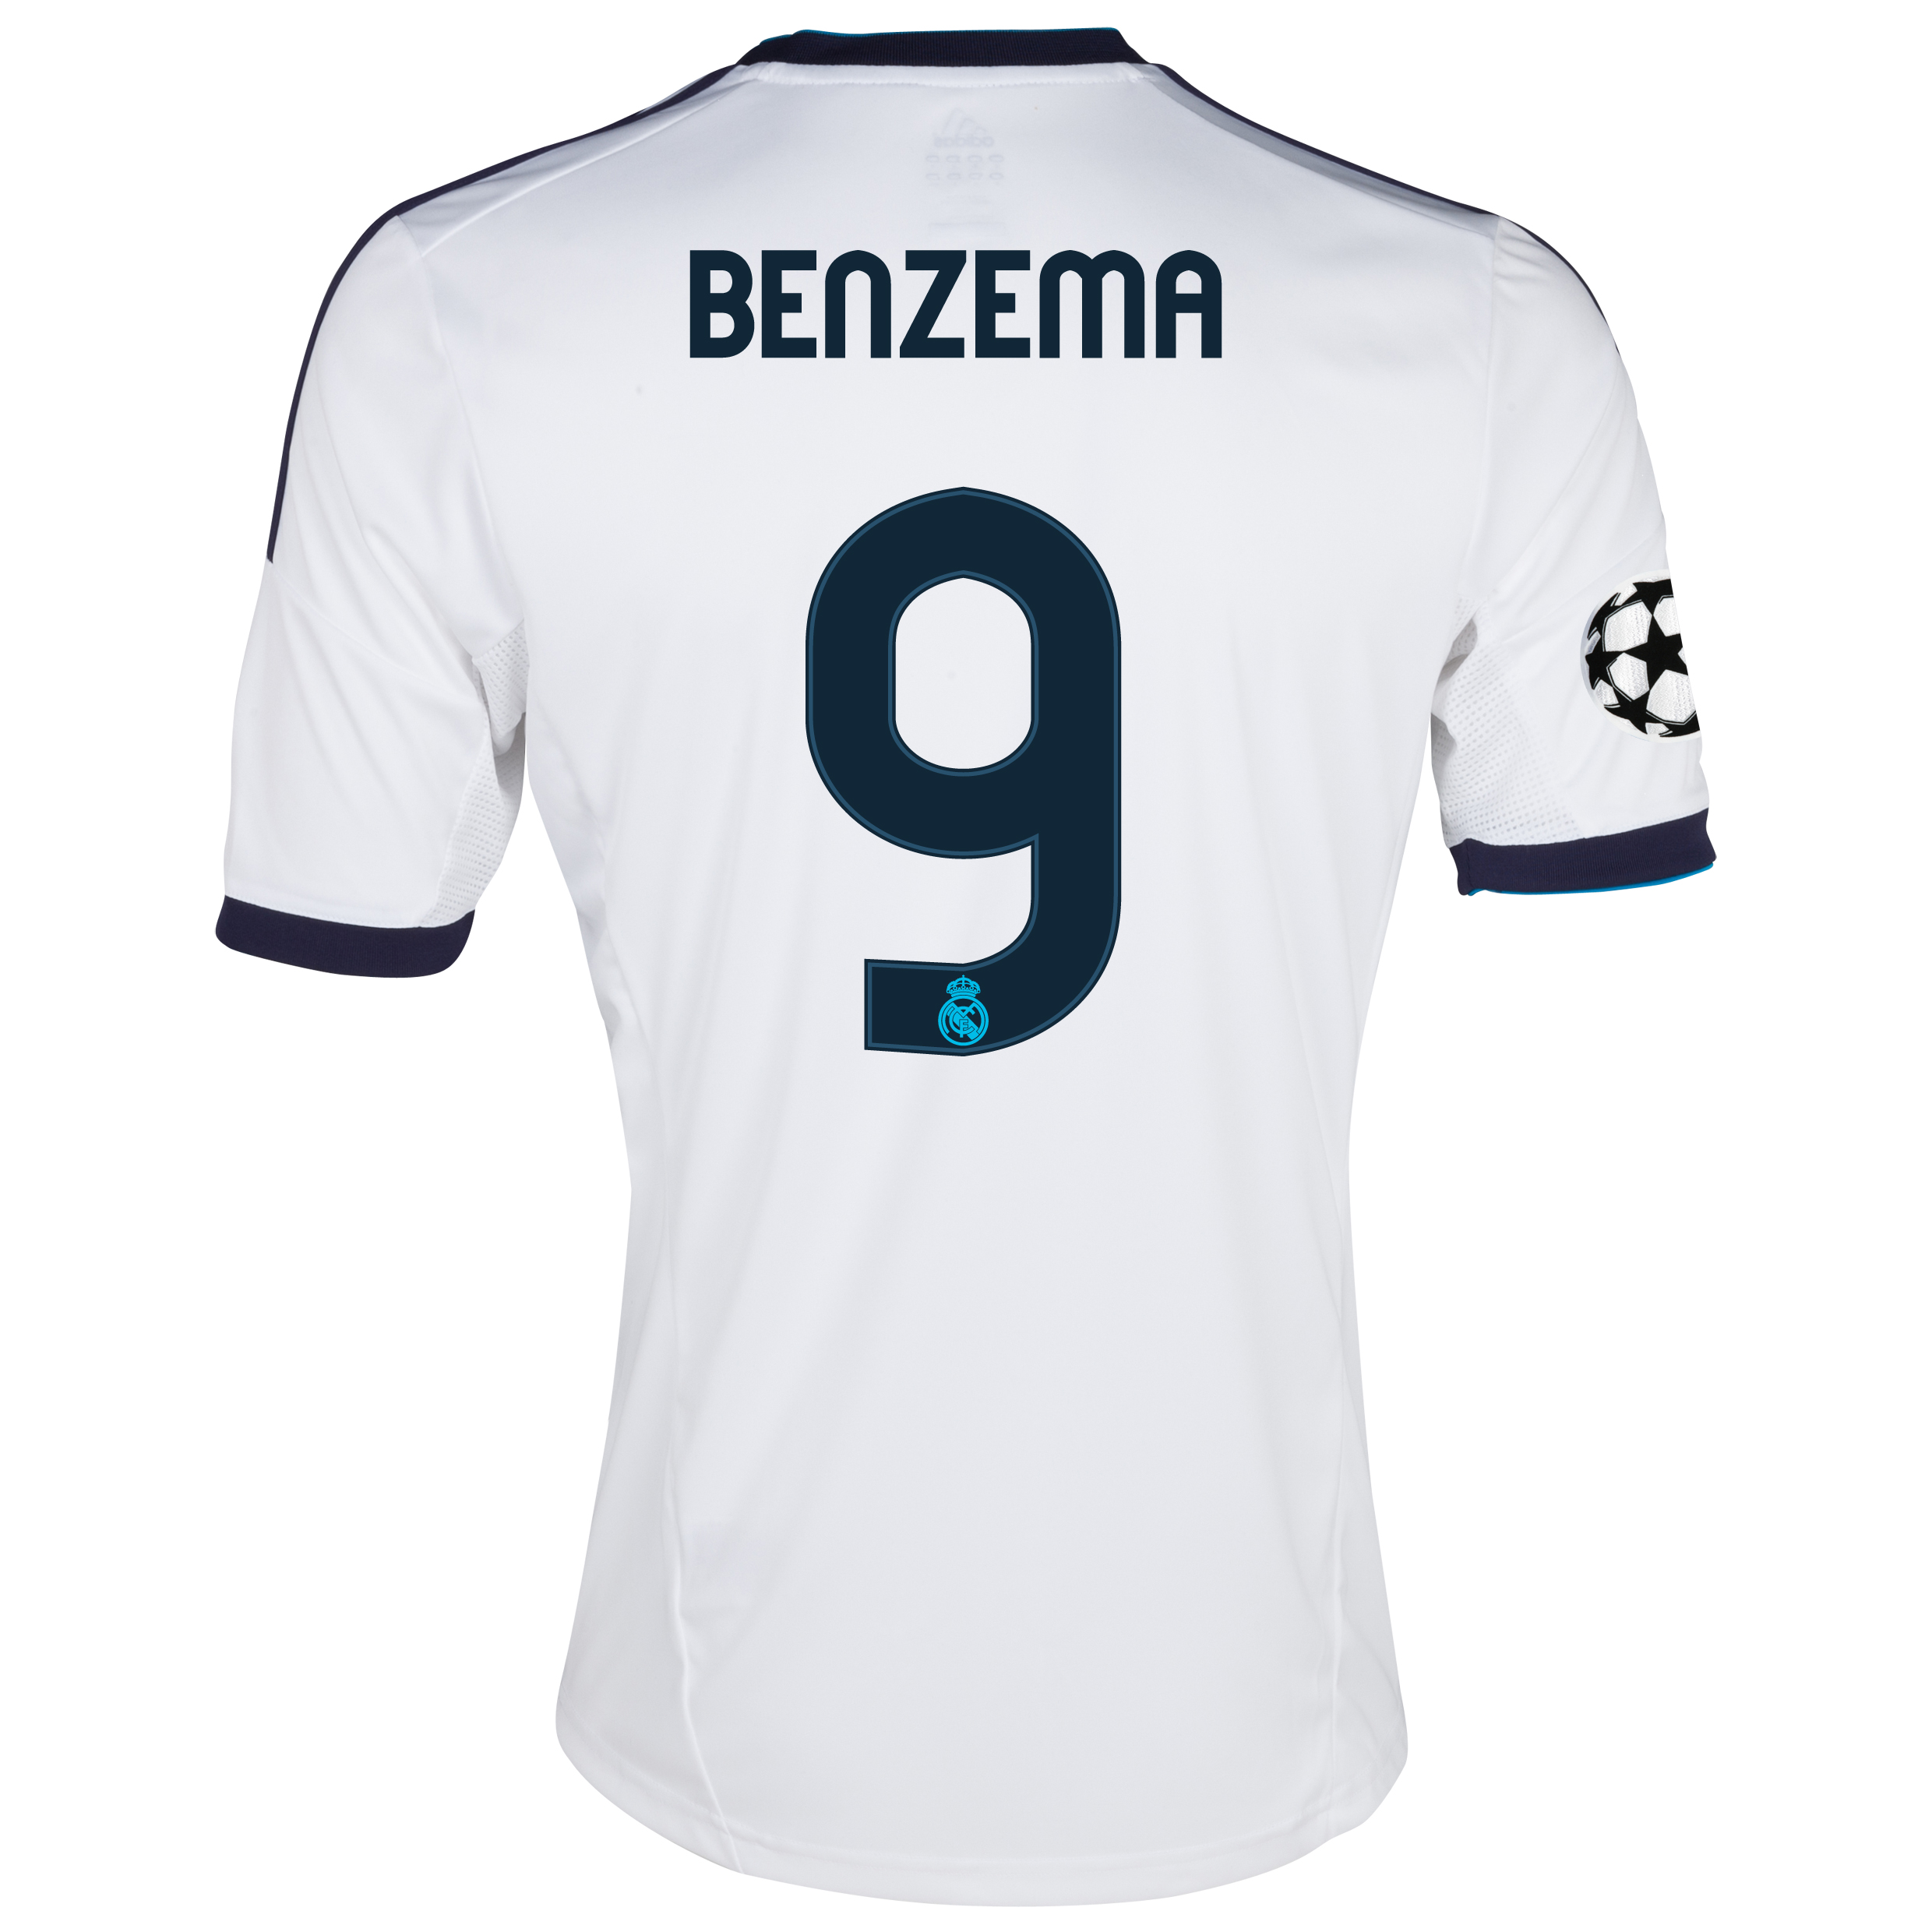 Real Madrid UEFA Champions League Home Shirt 2012/13 - Youths with Benzema 9 printing